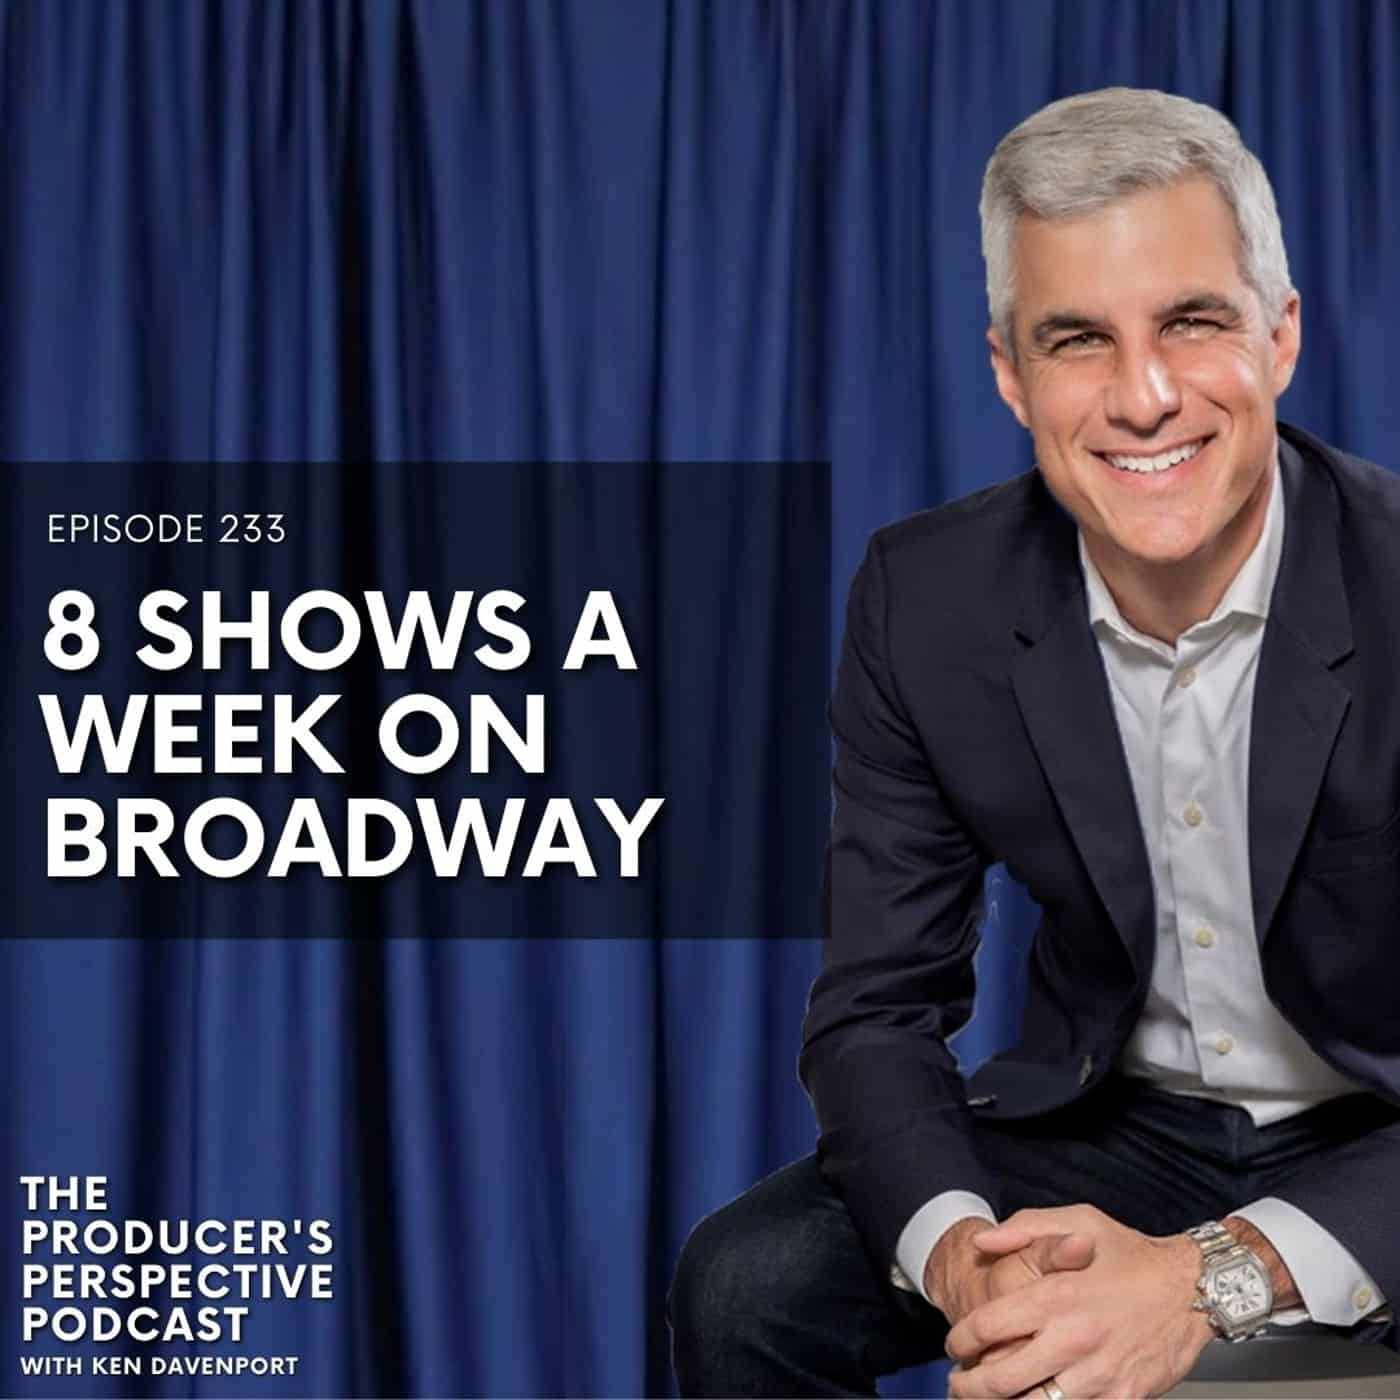 233 - Eight Shows a Week on Broadway